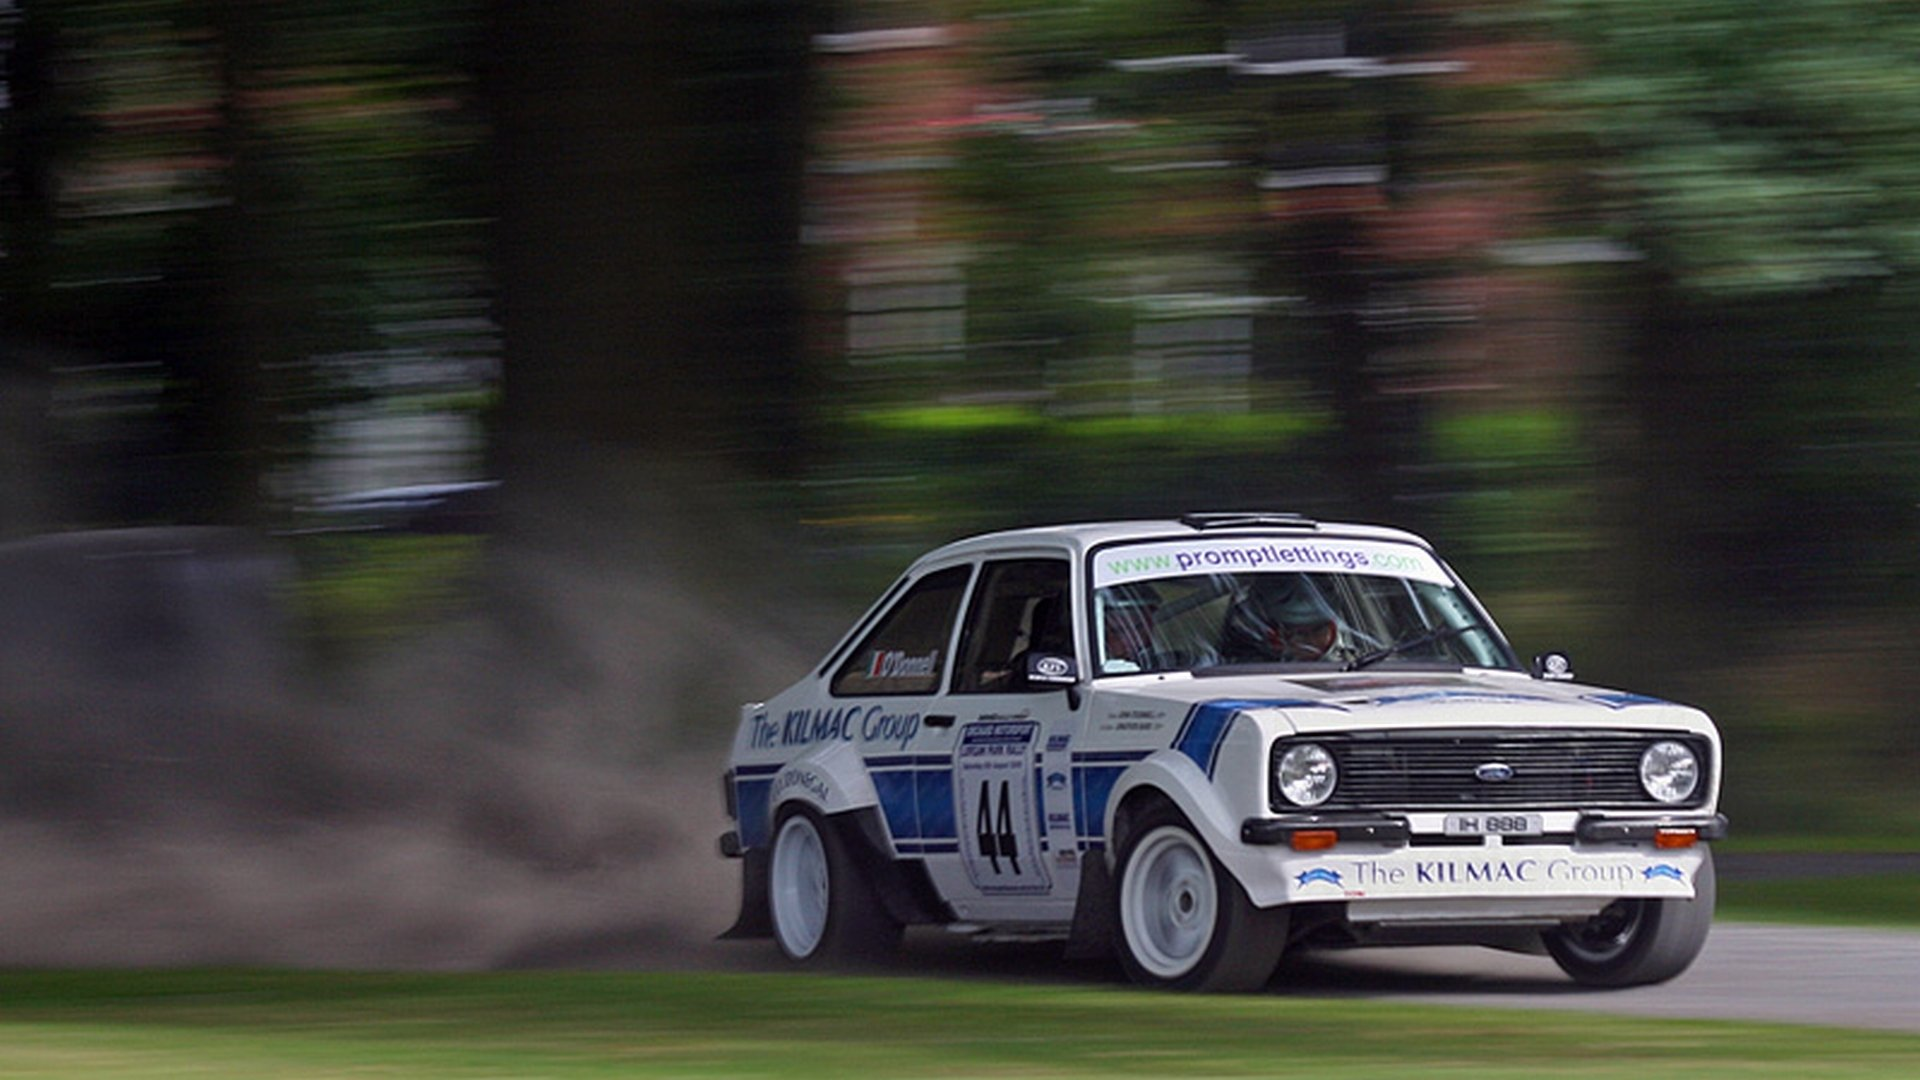 1920x1080 - Ford Escort Wallpapers 4